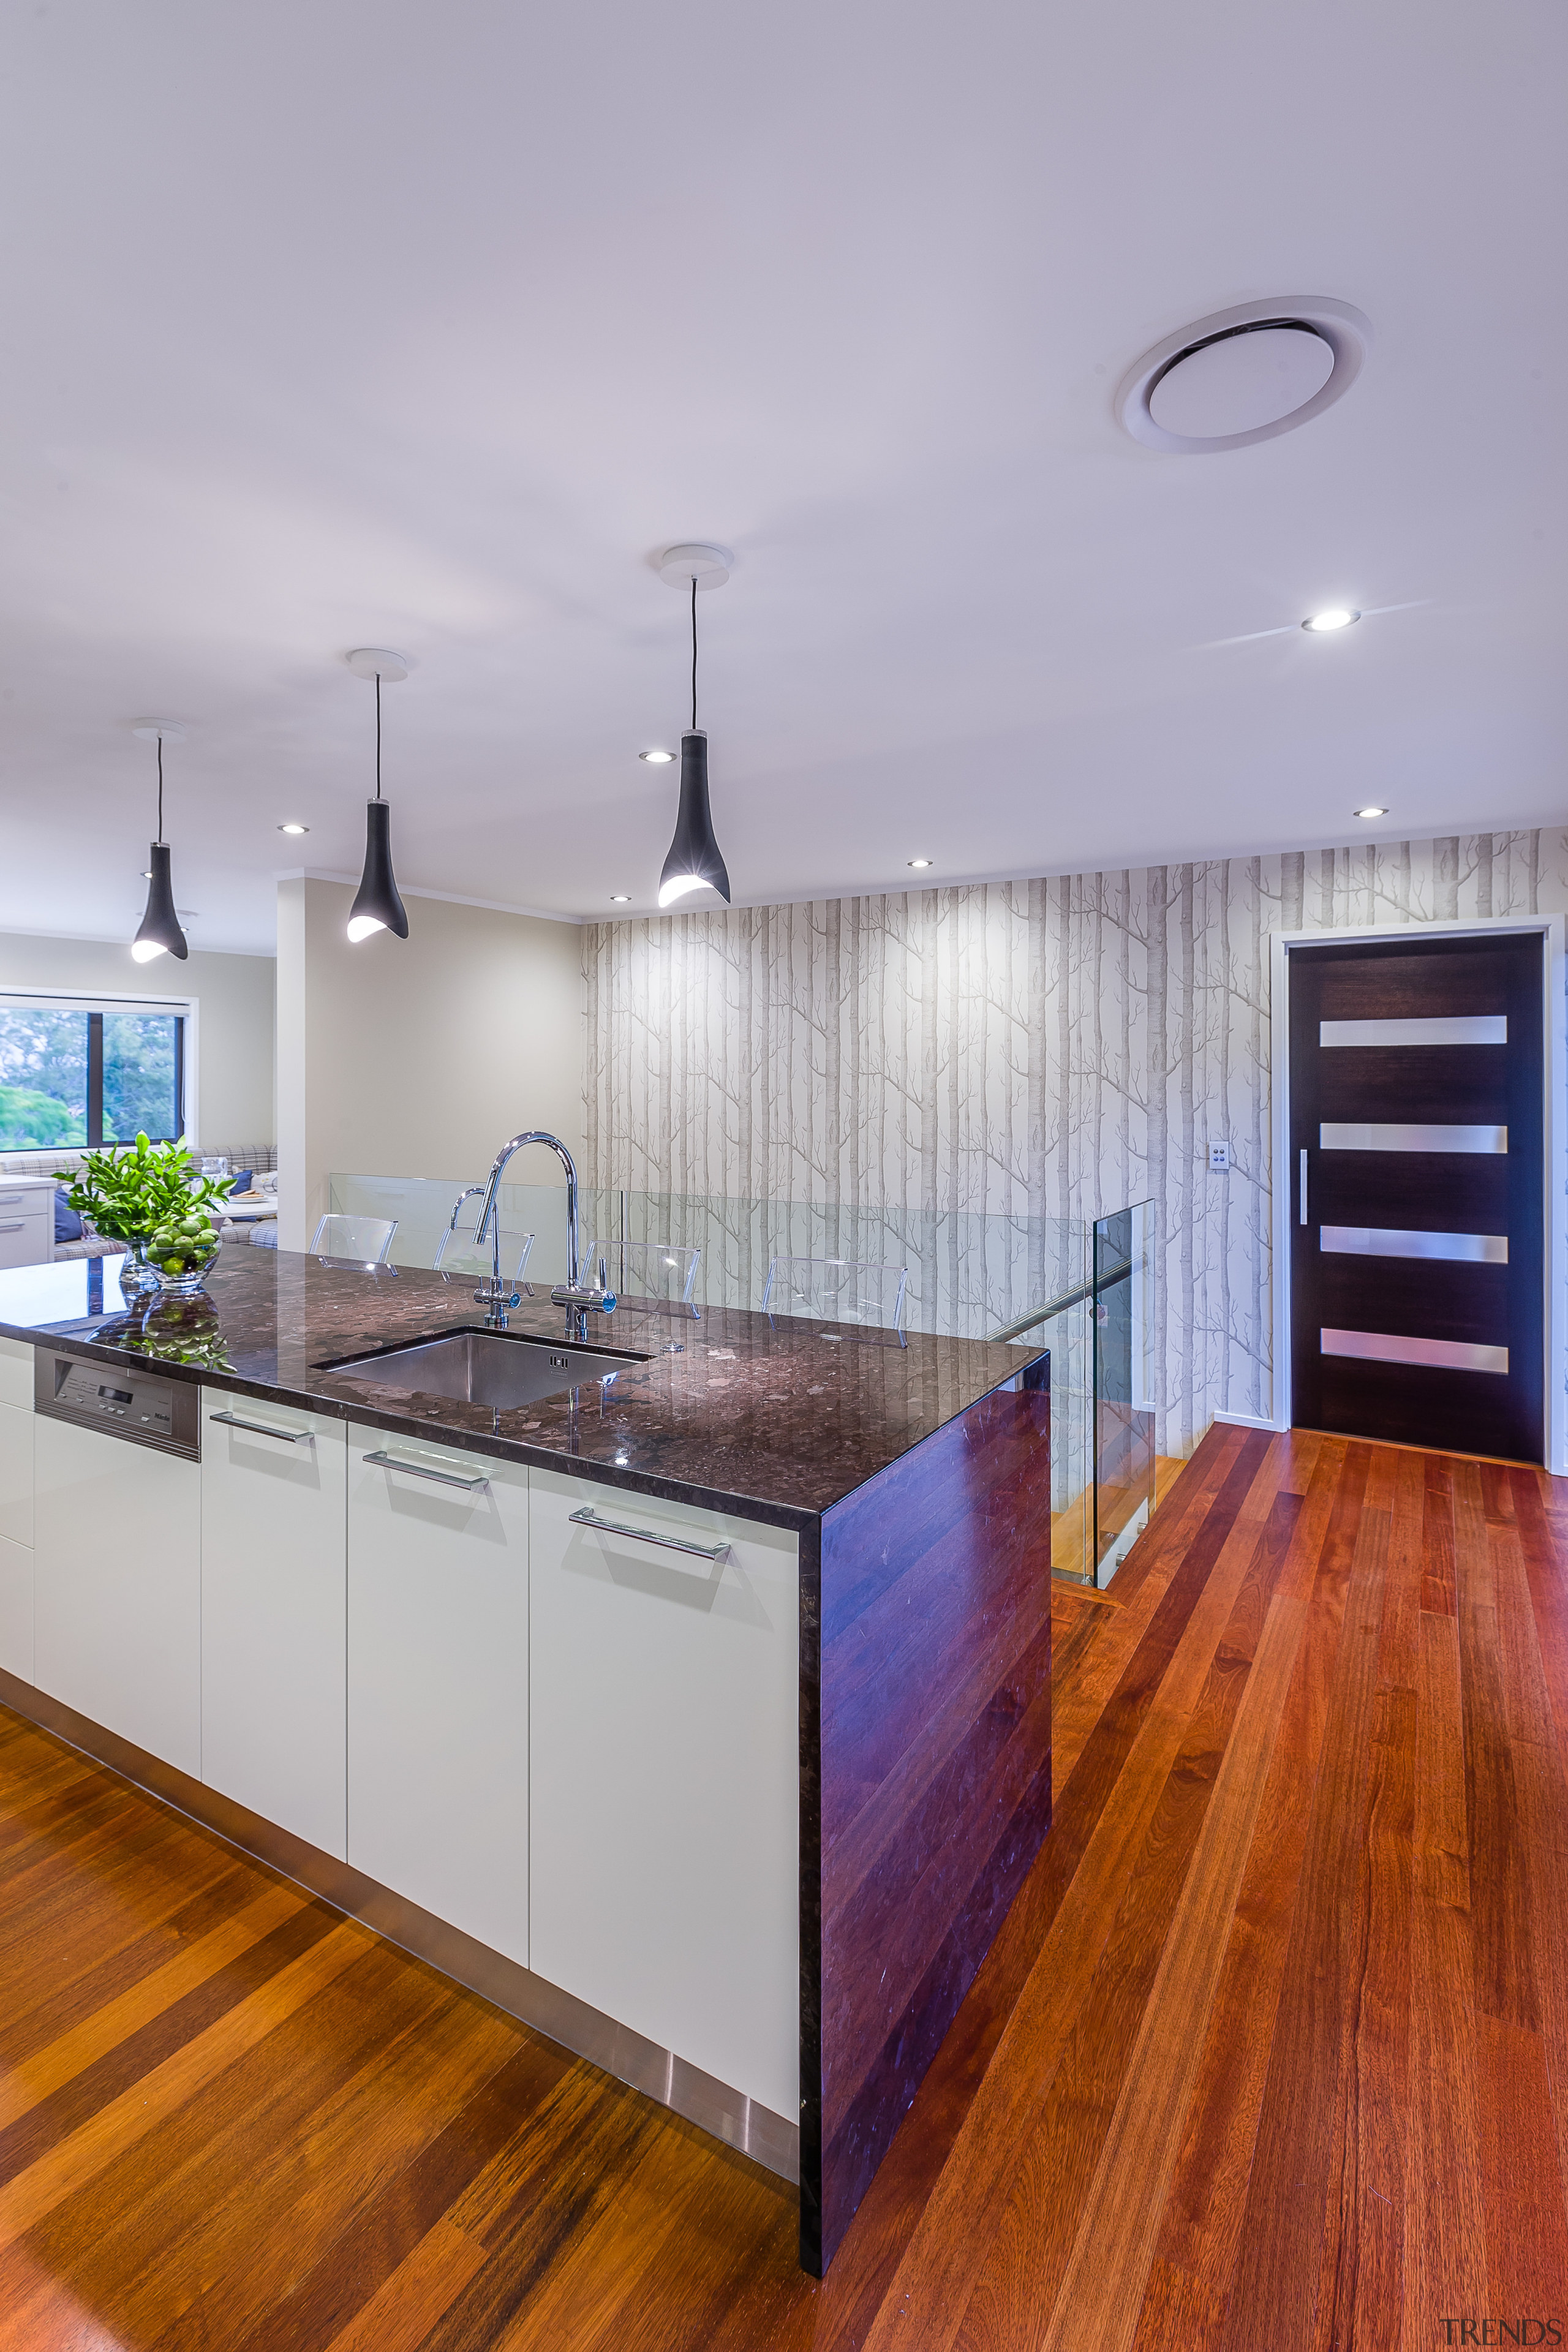 Contemporary kitchen renovation with granite waterfall island and architecture, cabinetry, ceiling, countertop, floor, flooring, hardwood, home, interior design, kitchen, laminate flooring, real estate, room, wood, wood flooring, gray